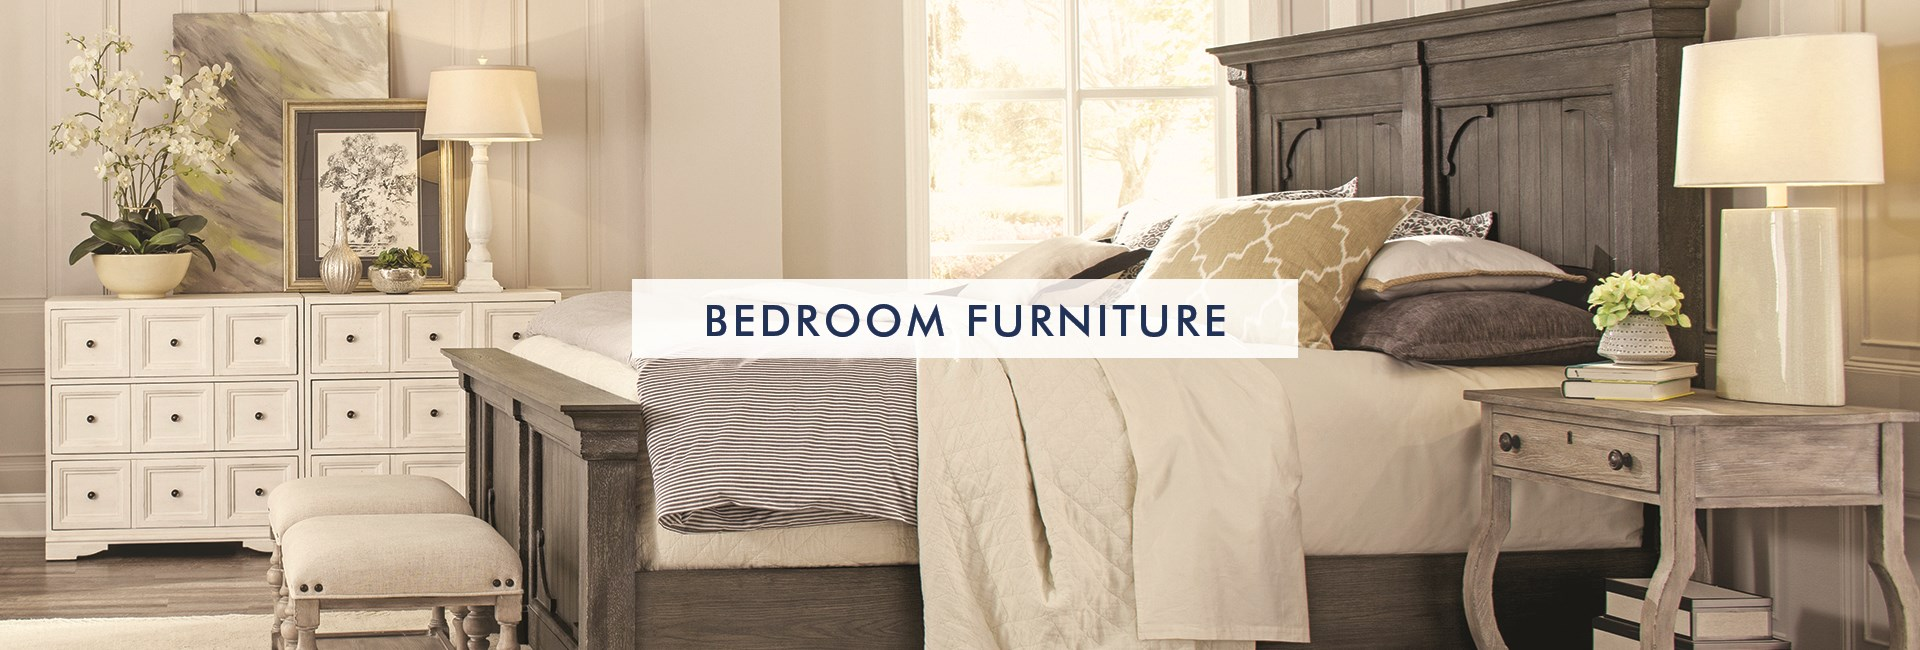 Shop Bedroom Furniture  Beaumont, Port Arthur, Lake Charles